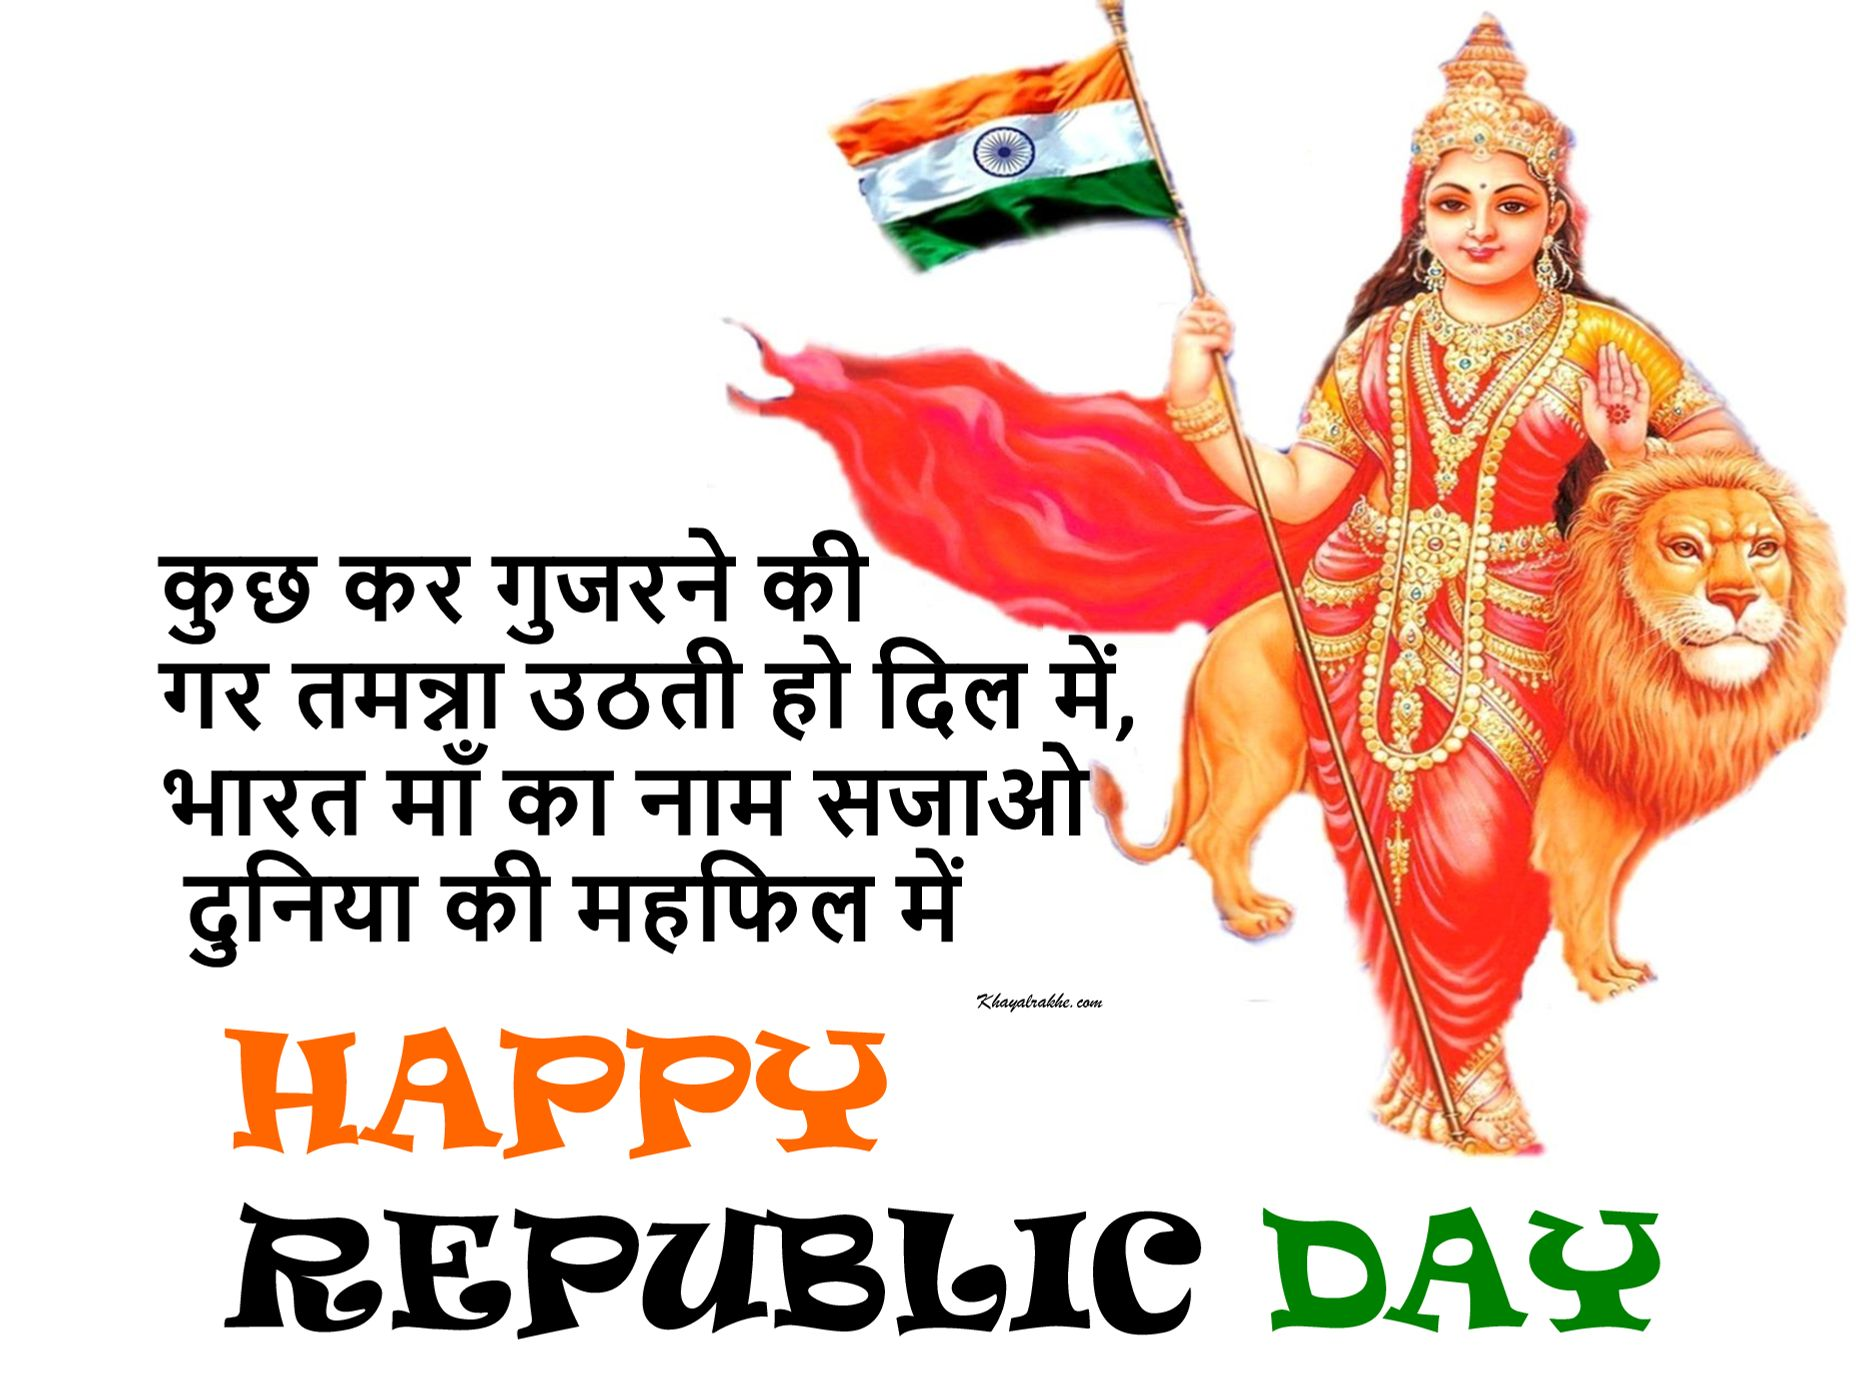 Best Republic Day Status in Hindi